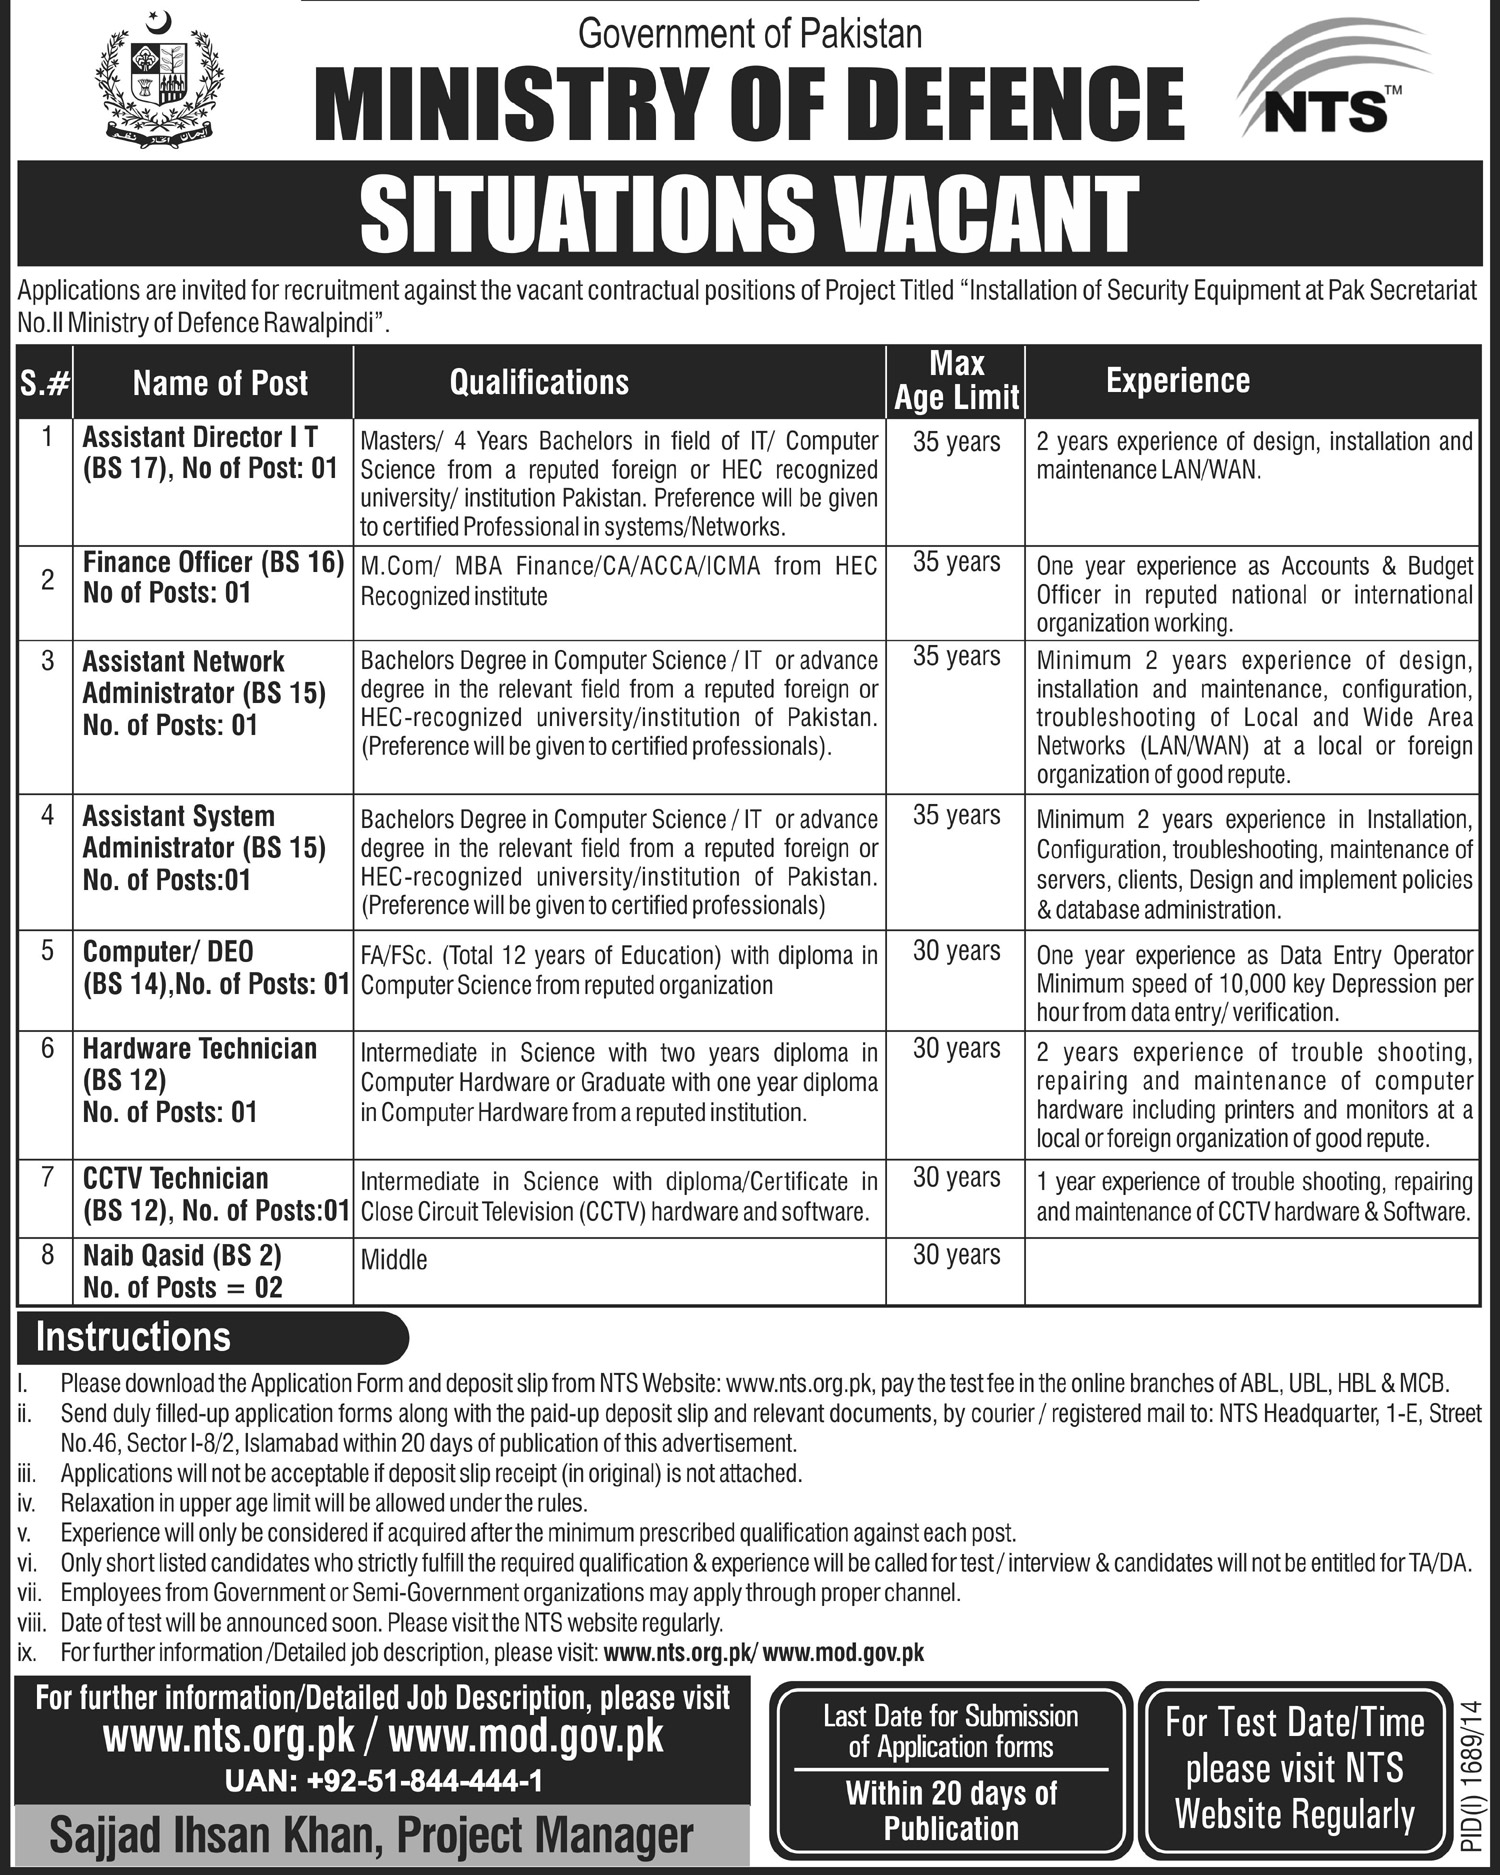 Ministry of Defence Pakistan Jobs 2014 Application Form, Test Result